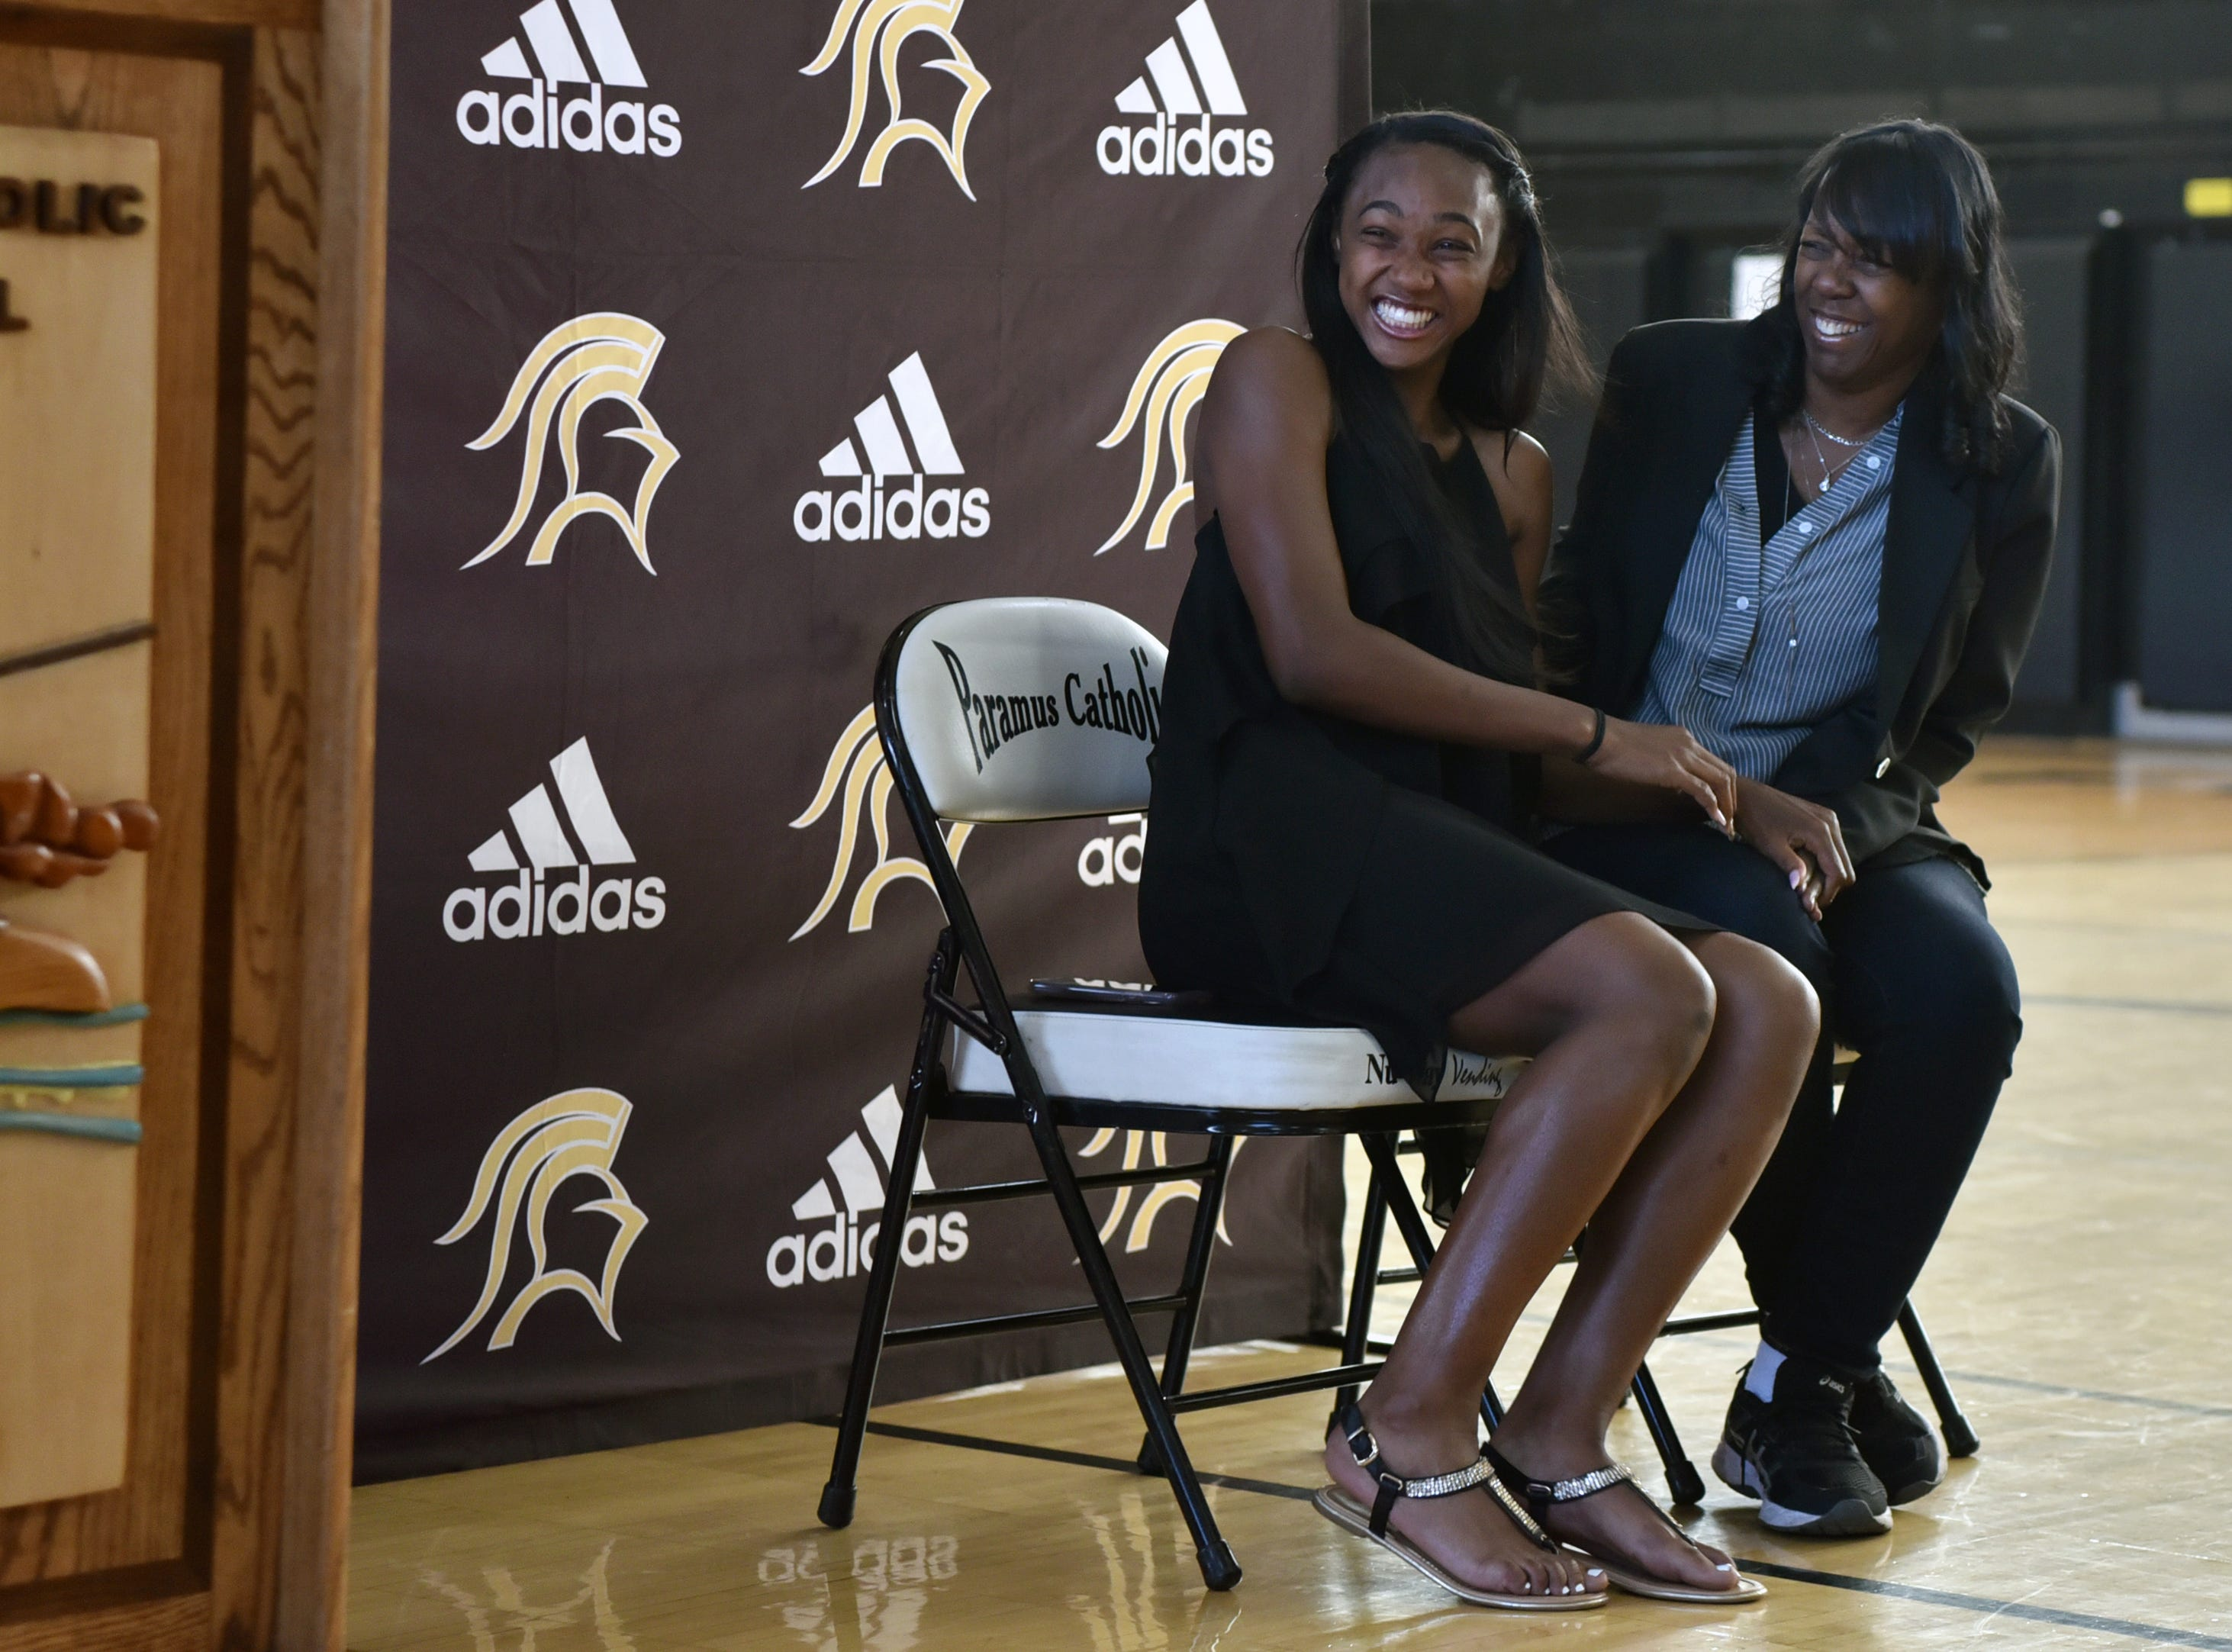 Paramus Catholic senior Kennedee Cox with her mother Beverlee Garvin, is shocked when Bob Chalfant of Foot Locker, not pictured, announces she is receiving $20,000 as part of its annual Foot Locker Scholar Athletes Program. Cox, of Teaneck, runs track at Paramus Catholic.